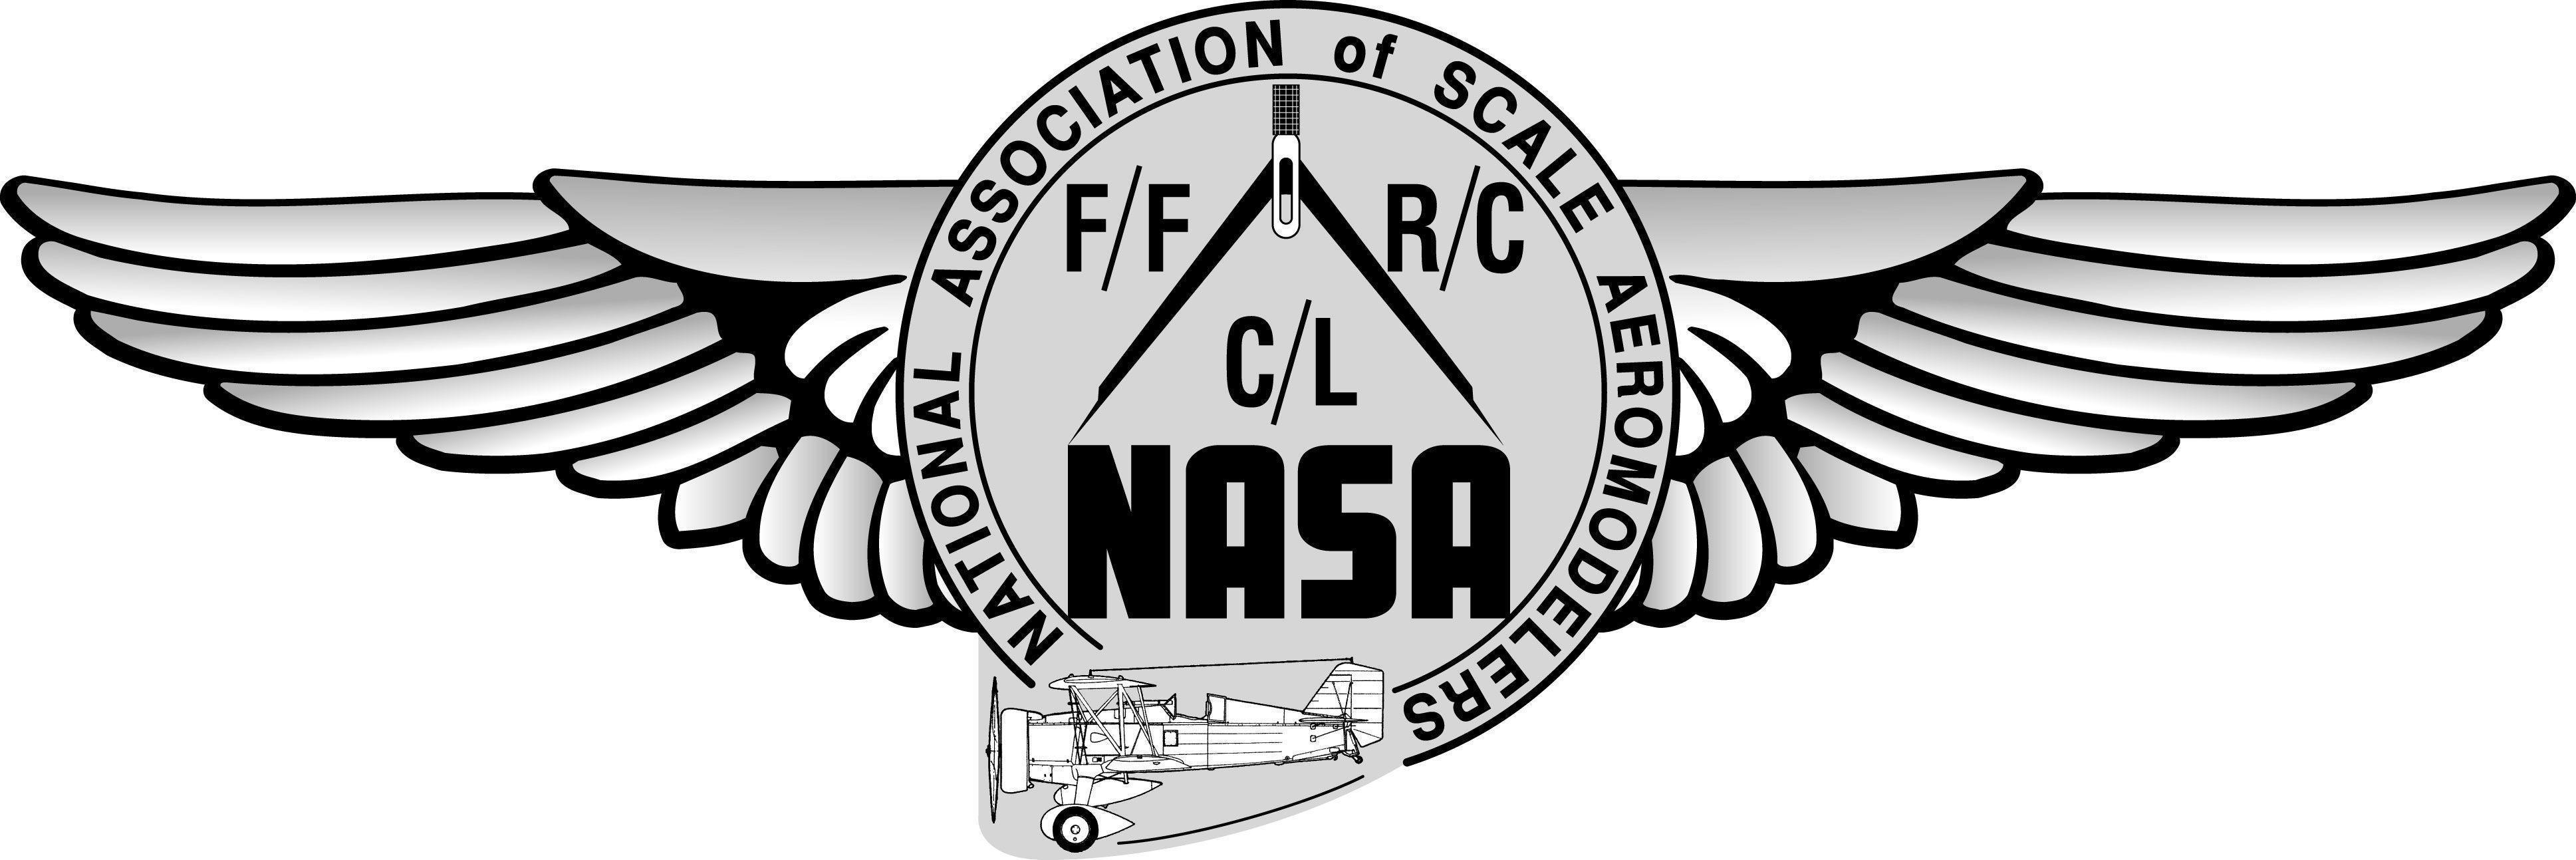 Logos For > Nasa Logo 2012